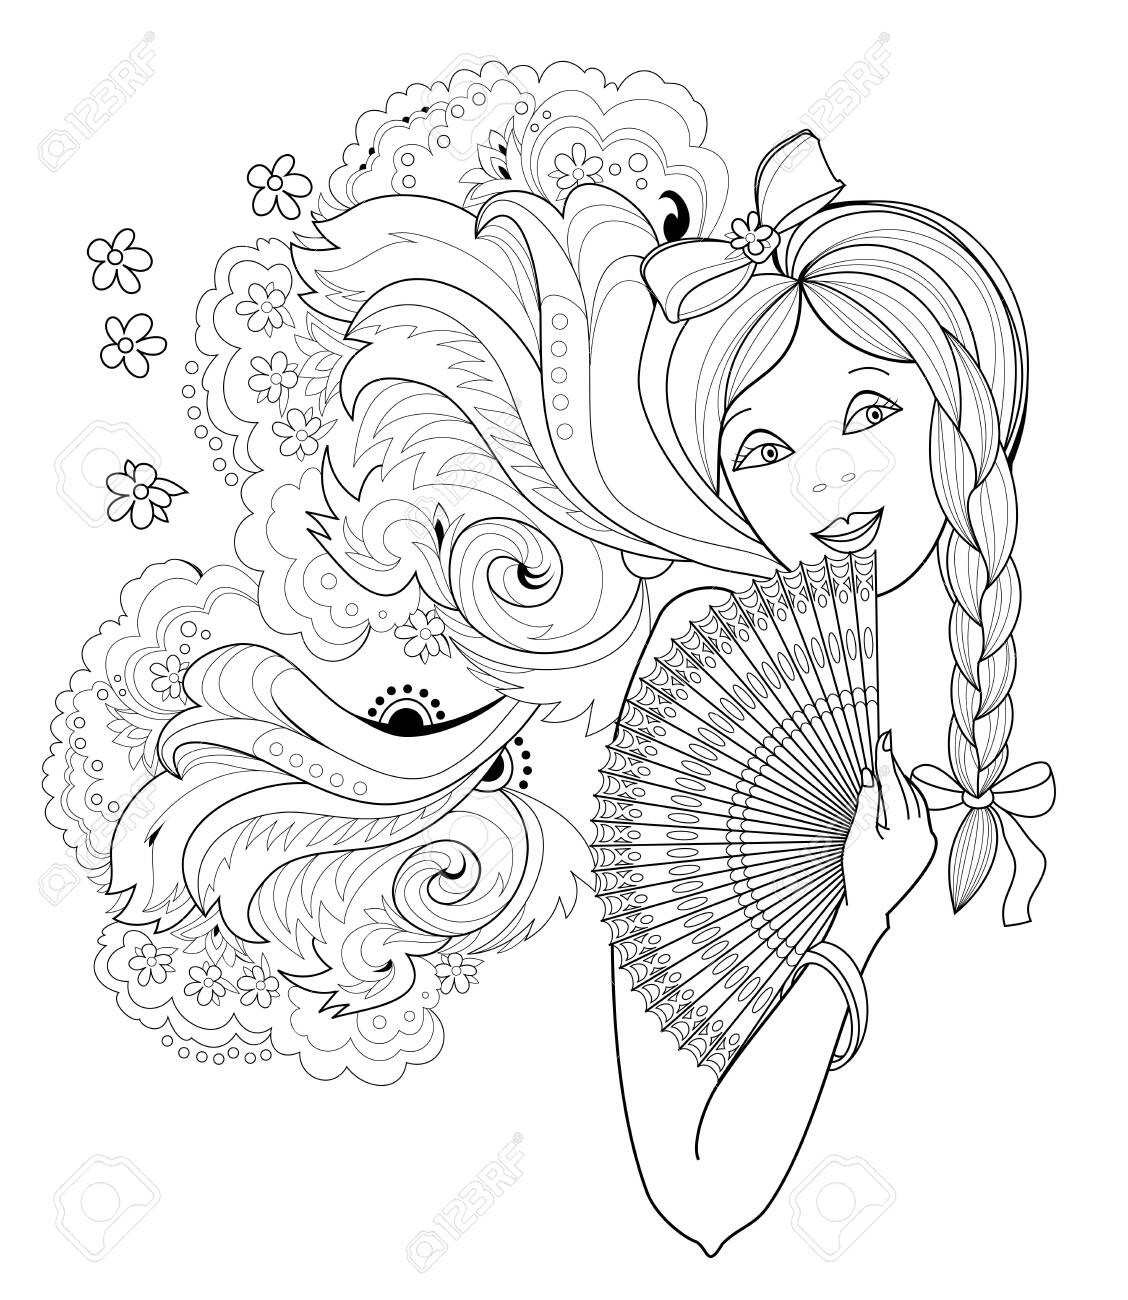 Black and white page for coloring book fantasy drawing of beautiful